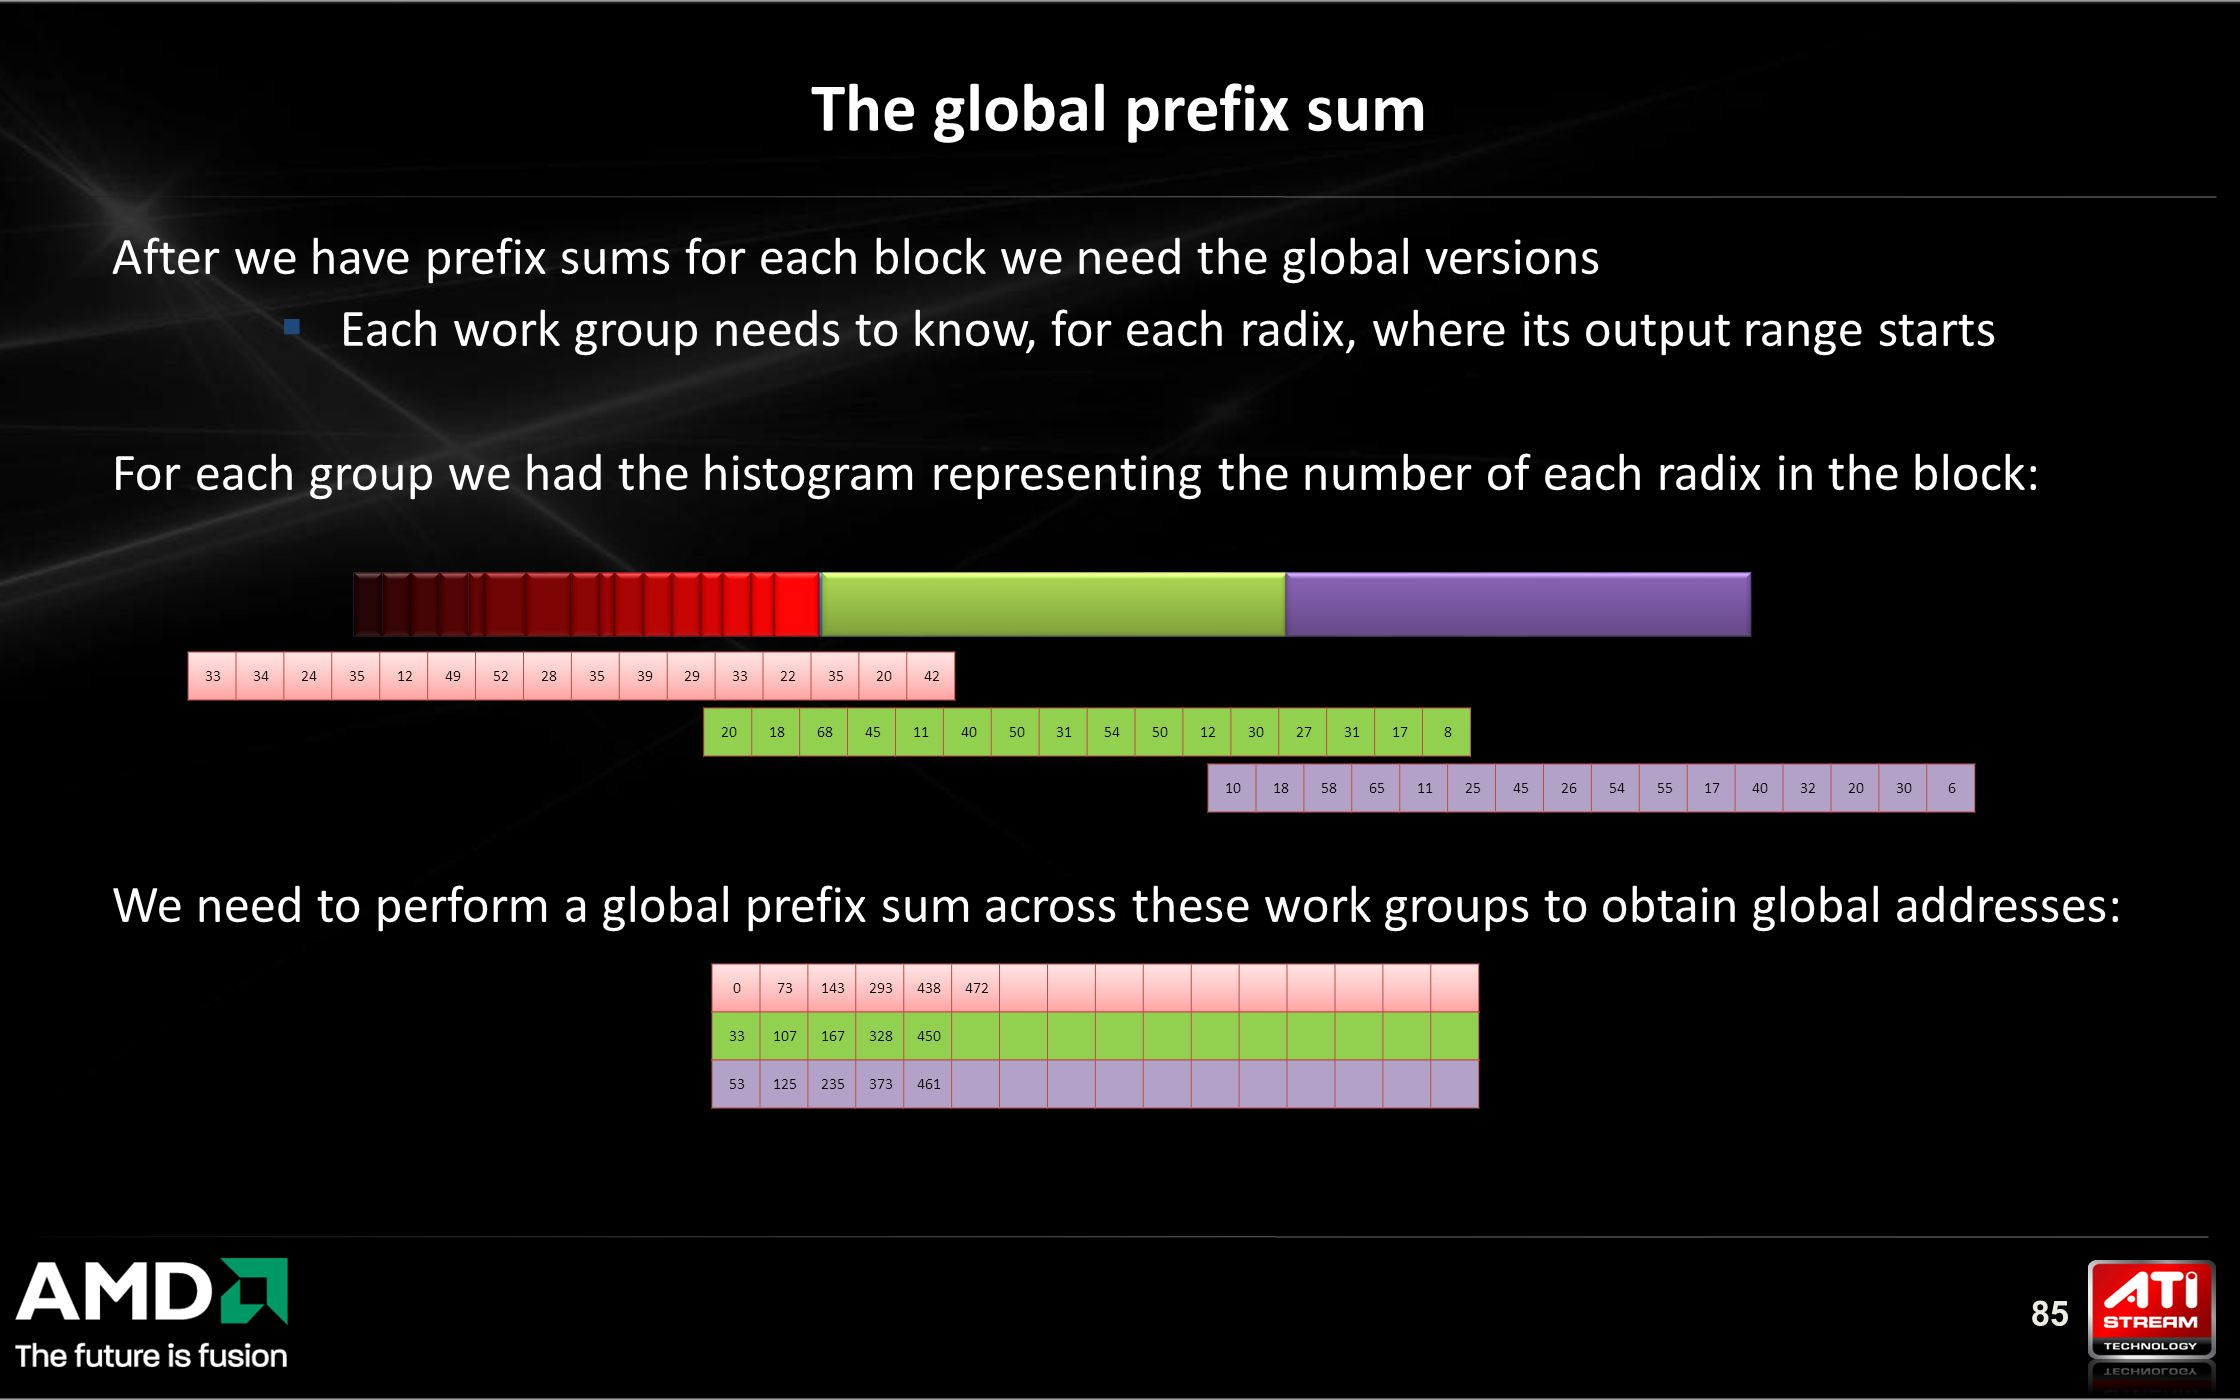 85 The global prefix sum After we have prefix sums for each block we need the global versions  Each work group needs to know, for each radix, where its output range starts For each group we had the histogram representing the number of each radix in the block: We need to perform a global prefix sum across these work groups to obtain global addresses: